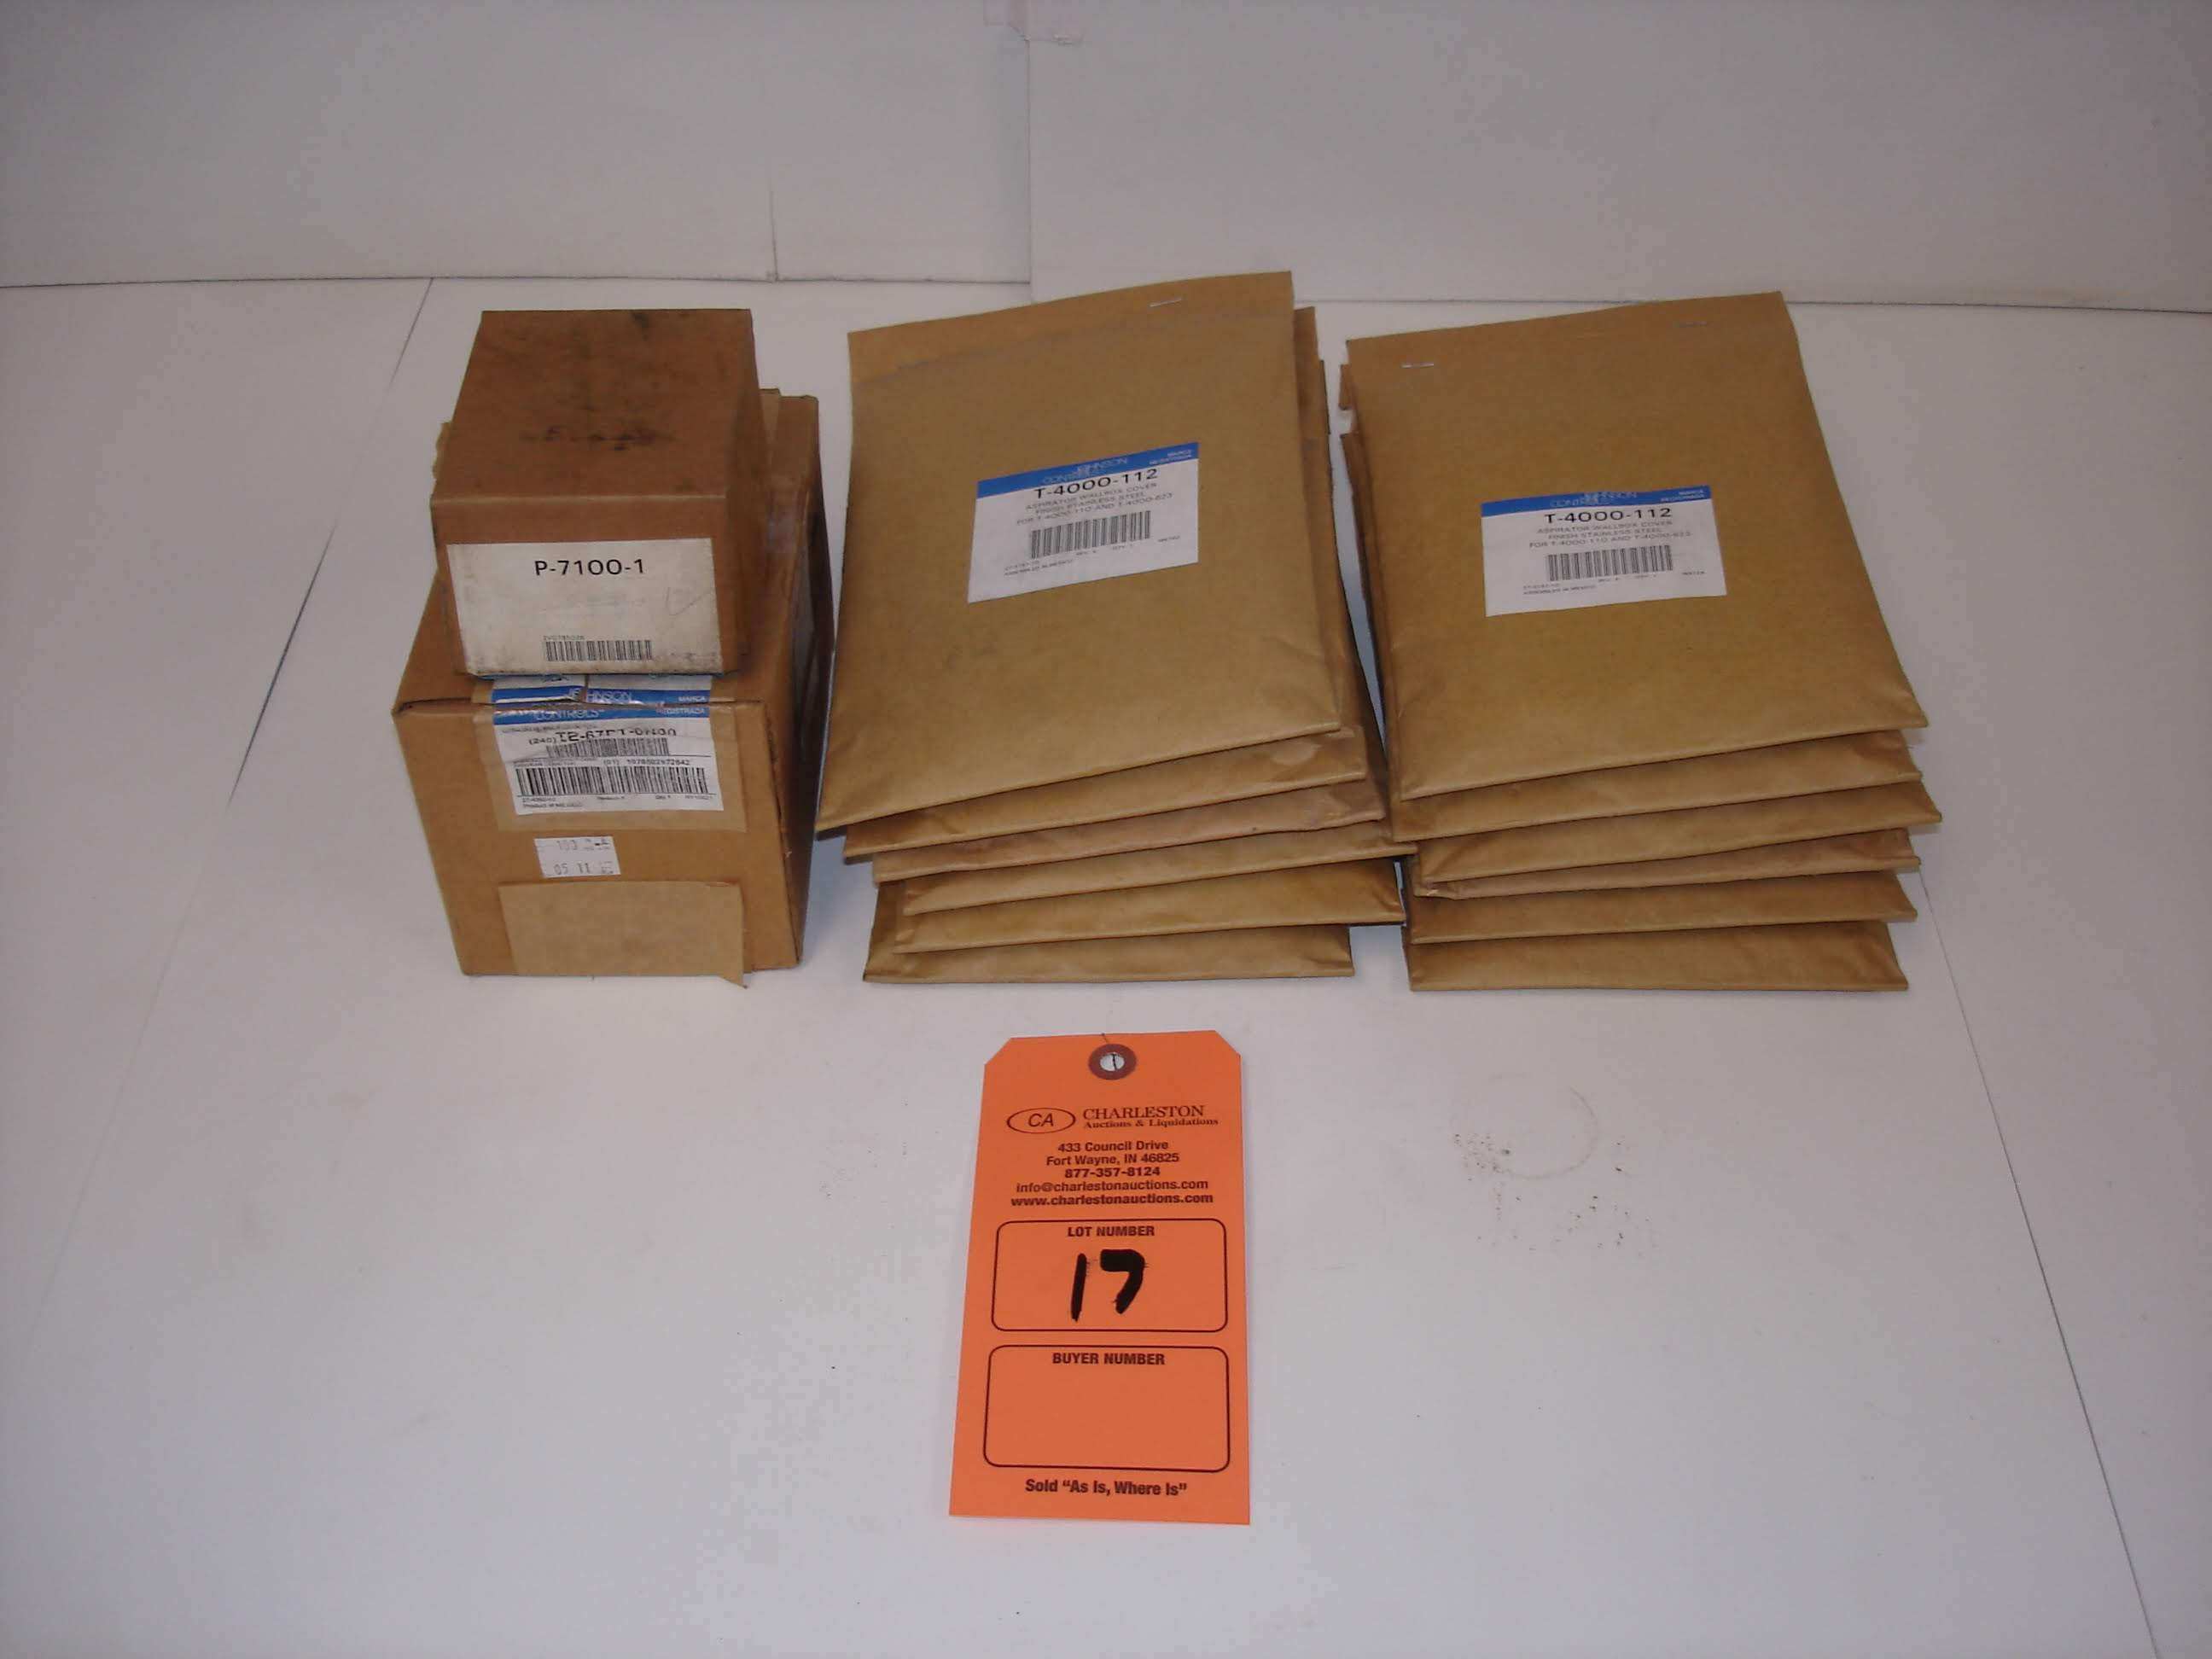 Lot 17 - (14) MISC JOHNSON CONTROLS REPLACEMENT KITS: JOHNSON CONTROLS P-7100-1 AND ALL OTHER ITEMS